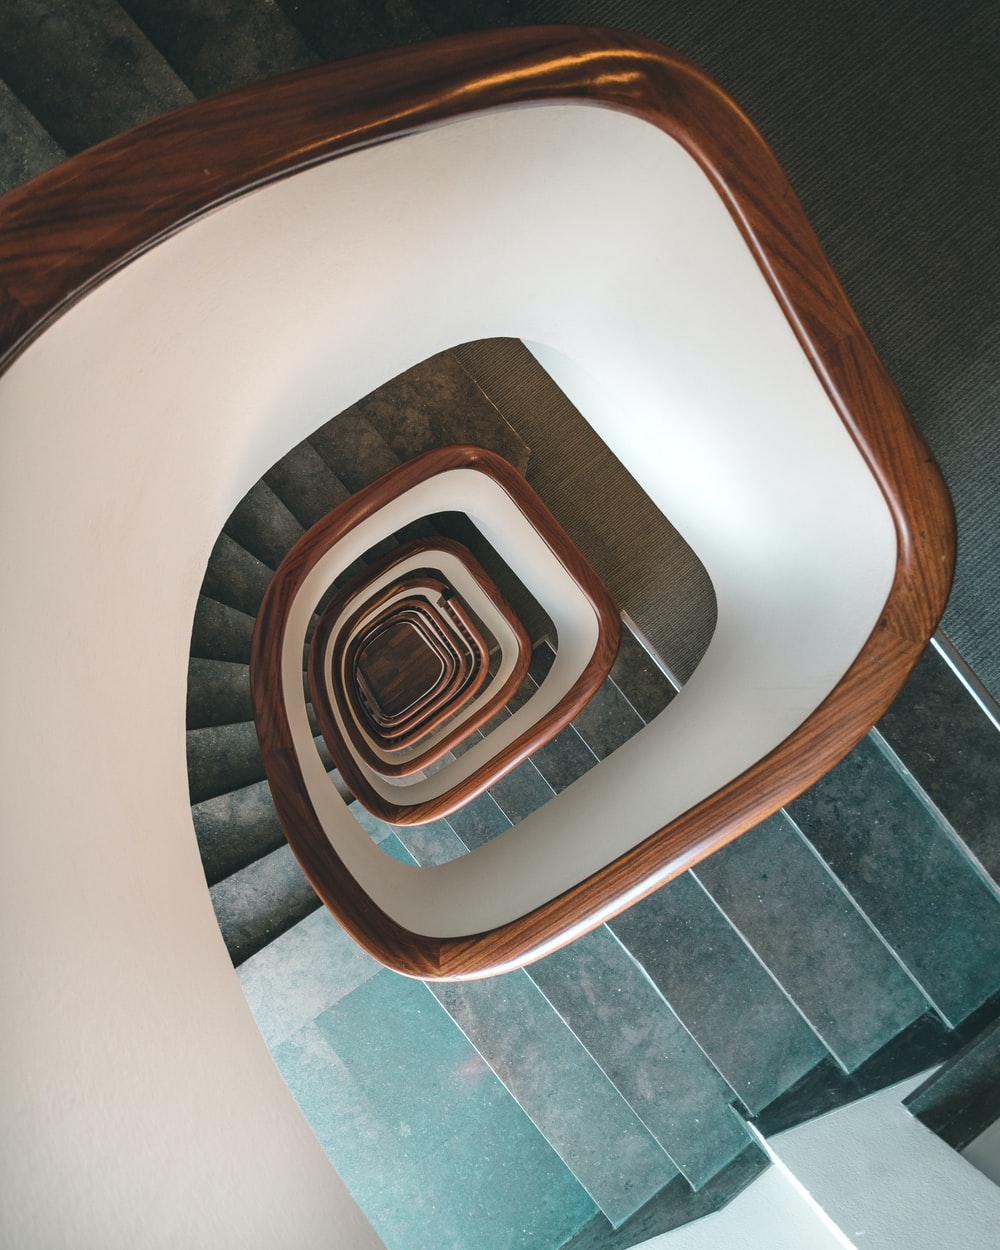 white spiral staircase with brown wooden railings